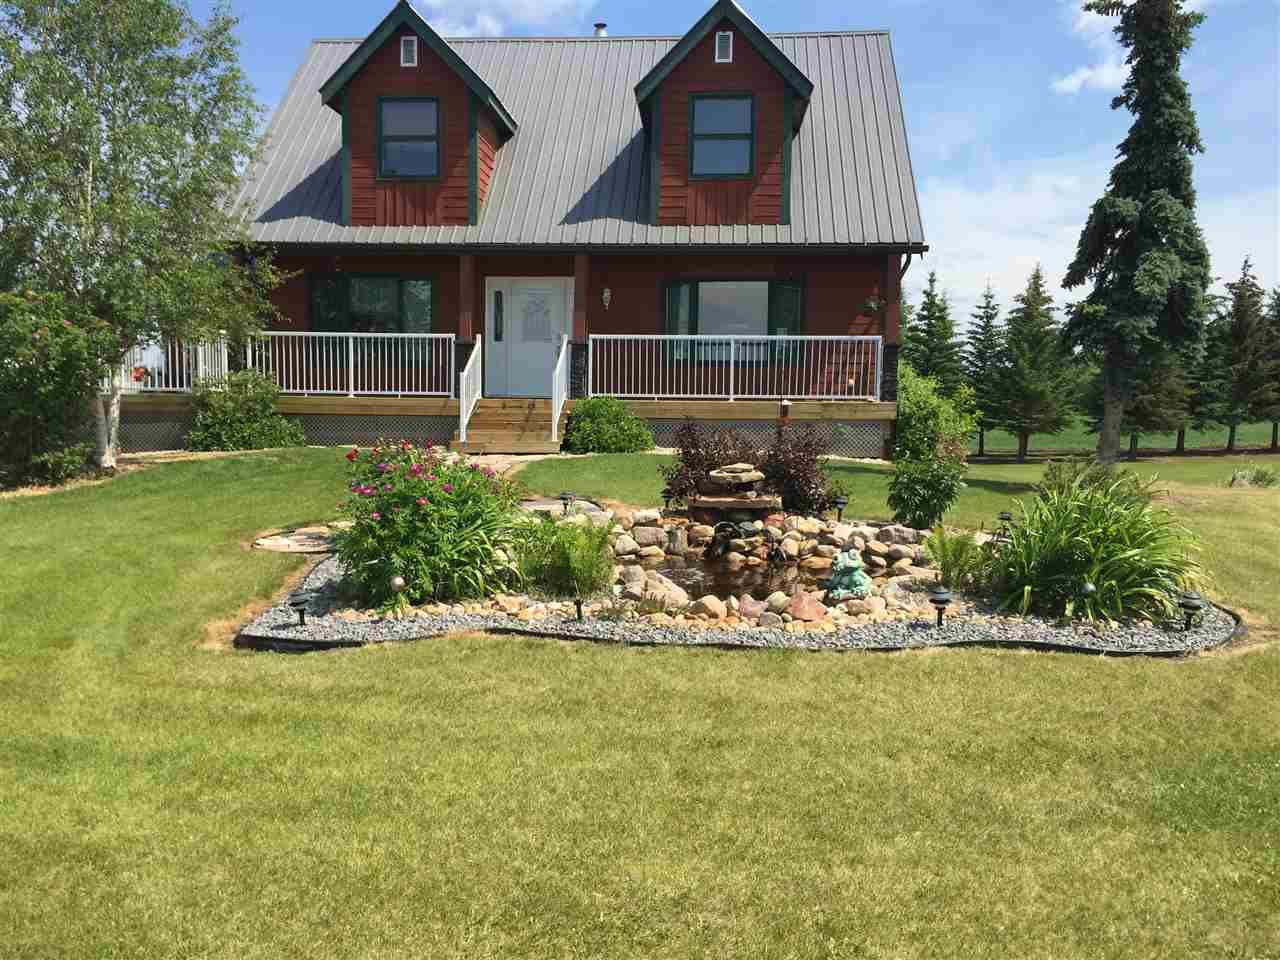 Main Photo: 26418 TWP 633: Rural Westlock County House for sale : MLS®# E4252312